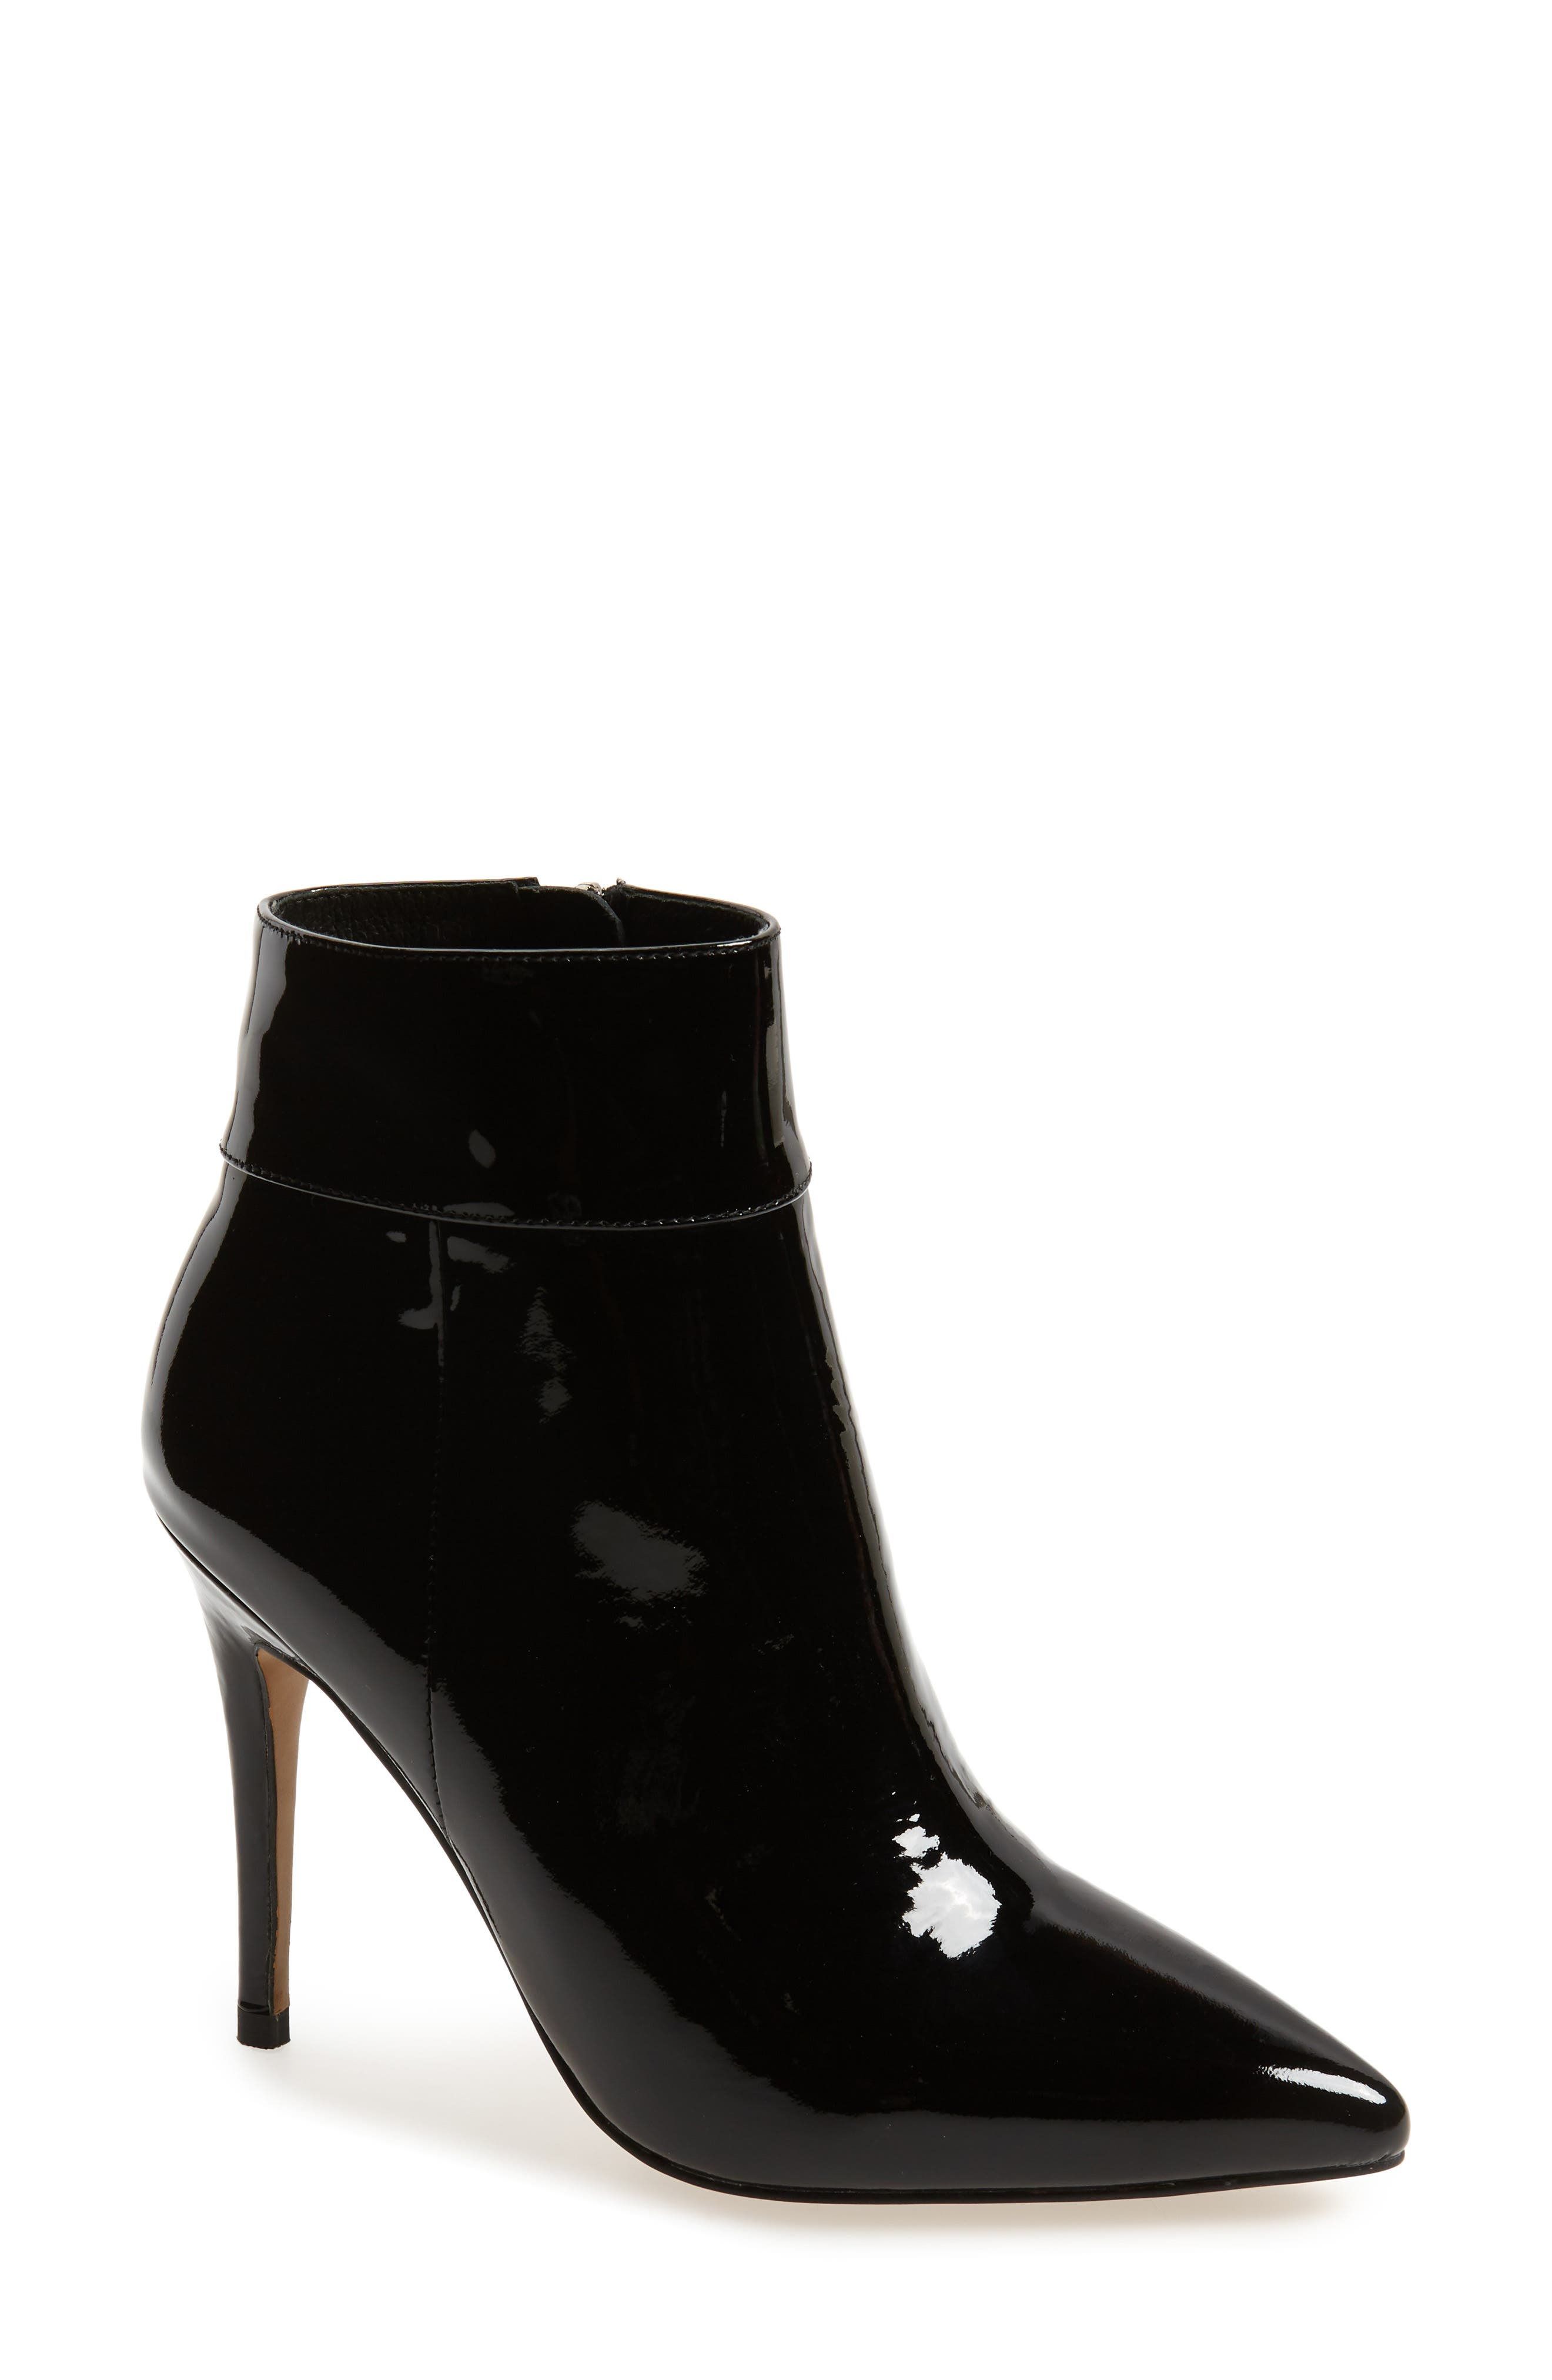 Tally Pointy Toe Bootie in Black Patent Leather